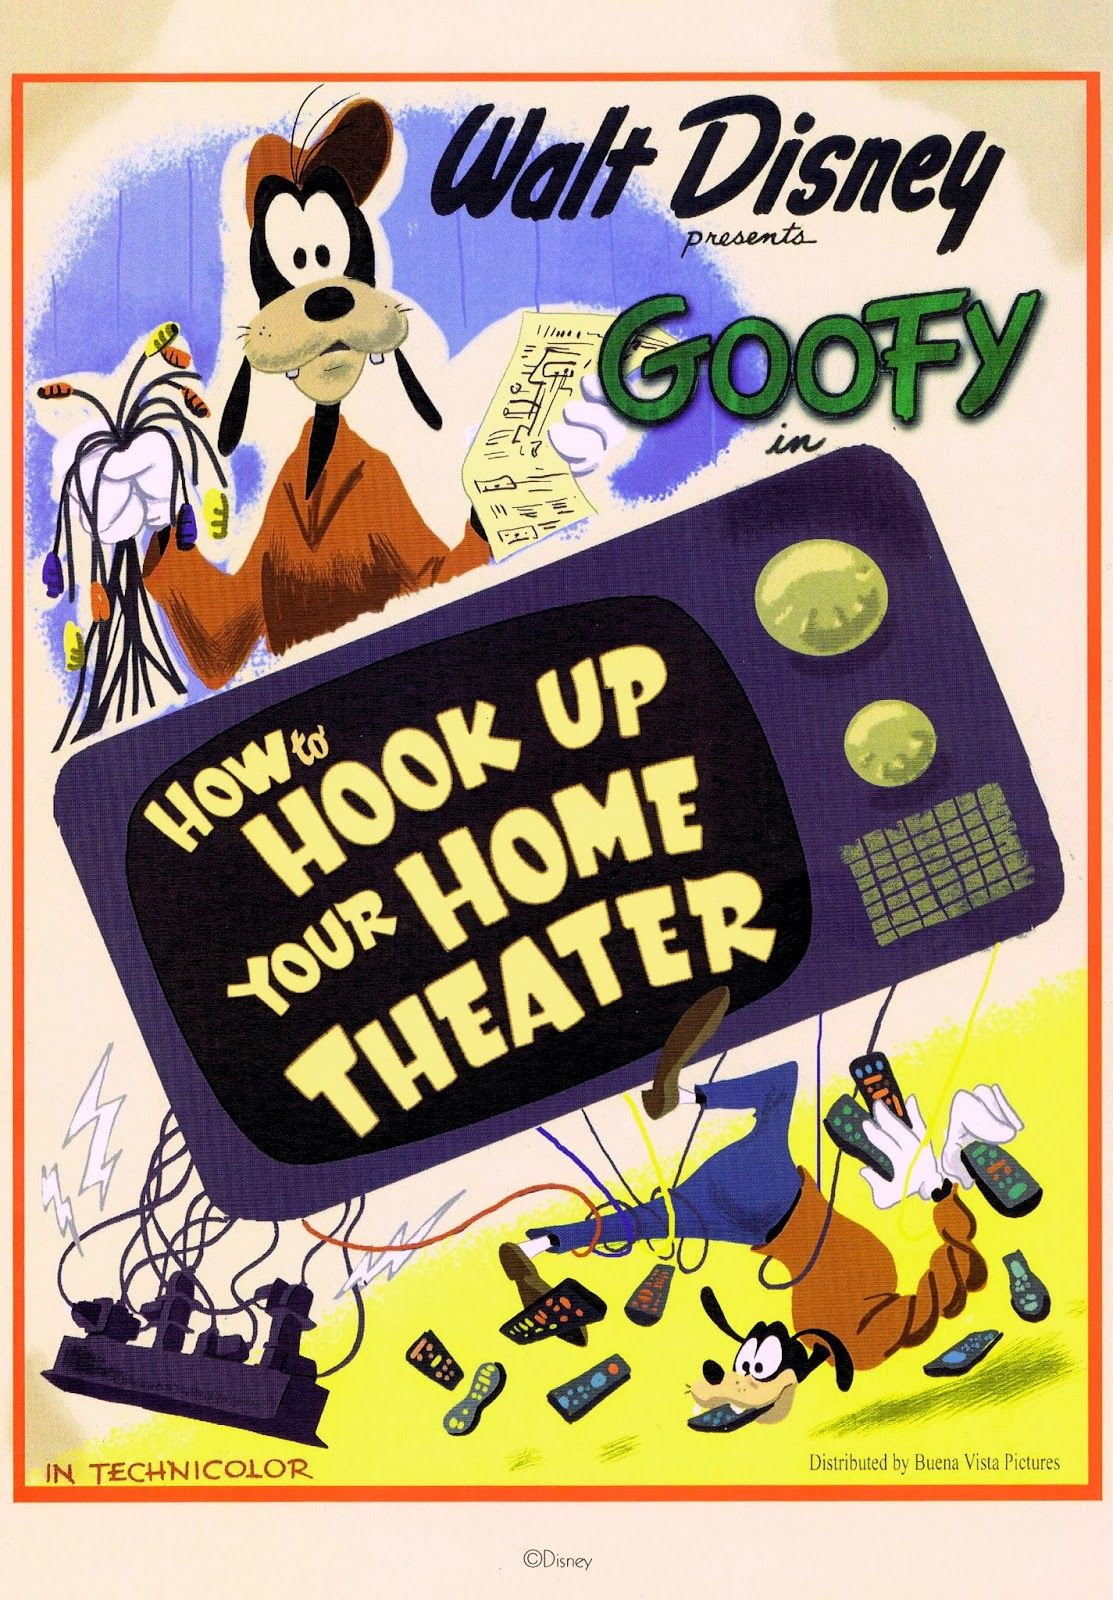 goofy in how to hook up your home theater | disney, where dreams